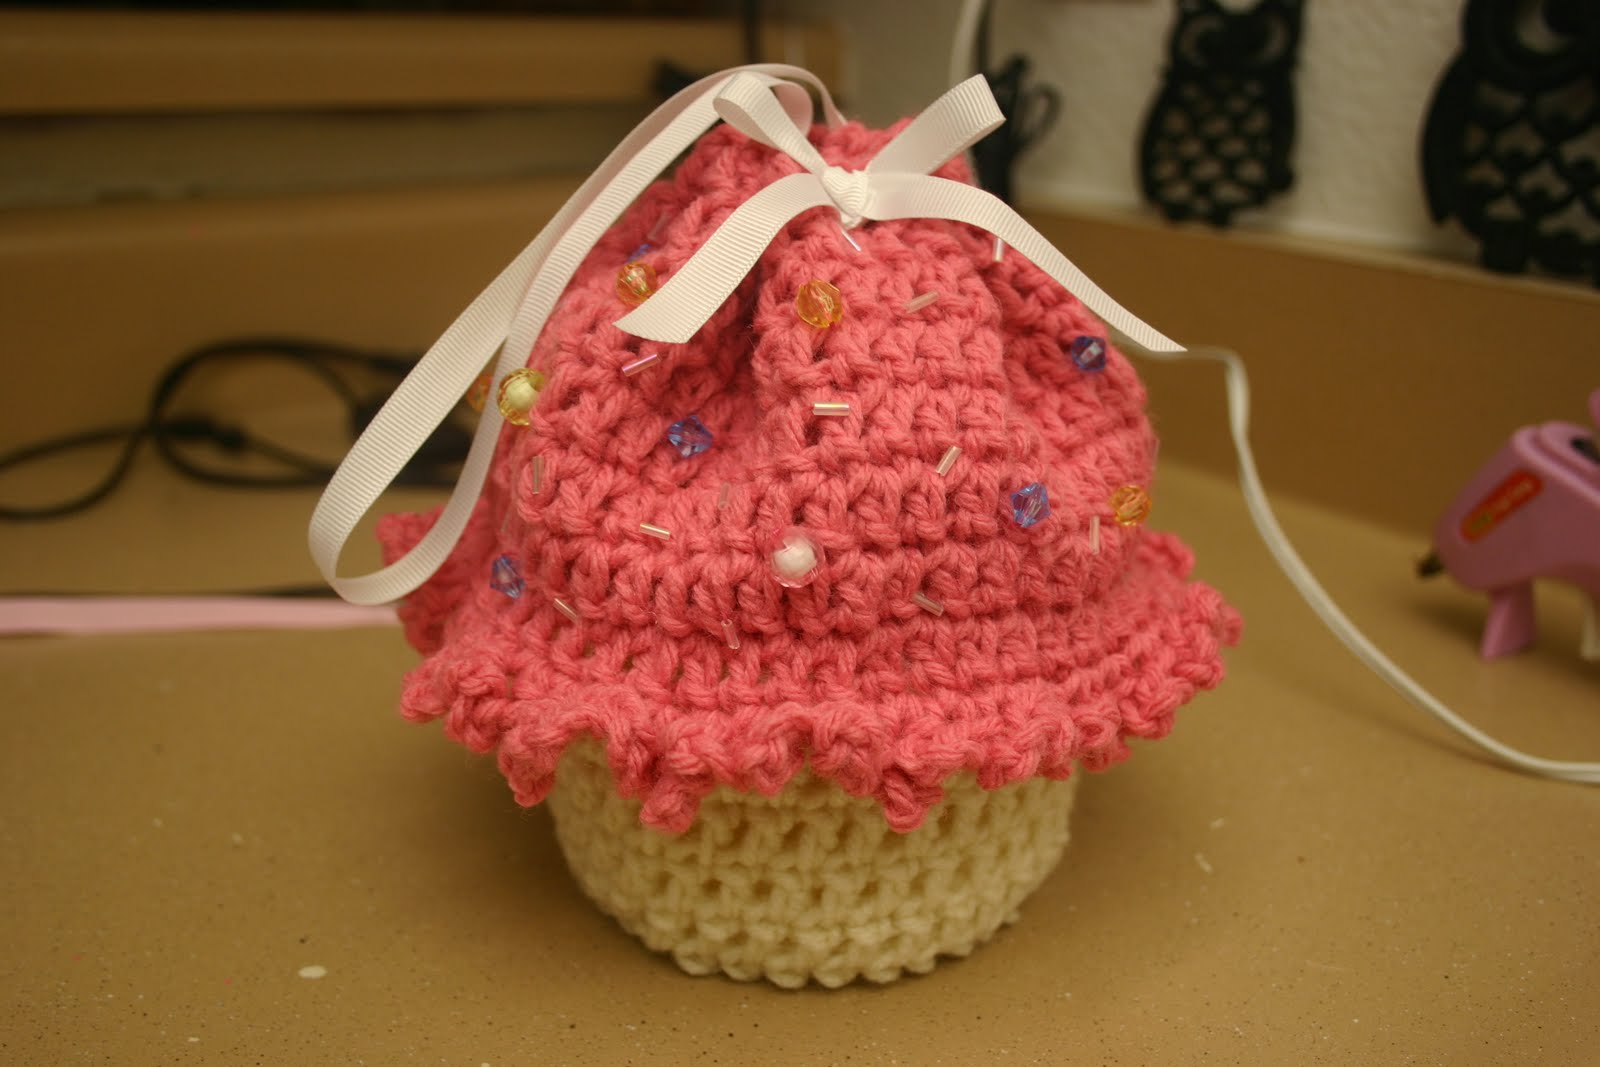 15 crochet purse patterns guide patterns crochet cupcake purse pattern bankloansurffo Gallery